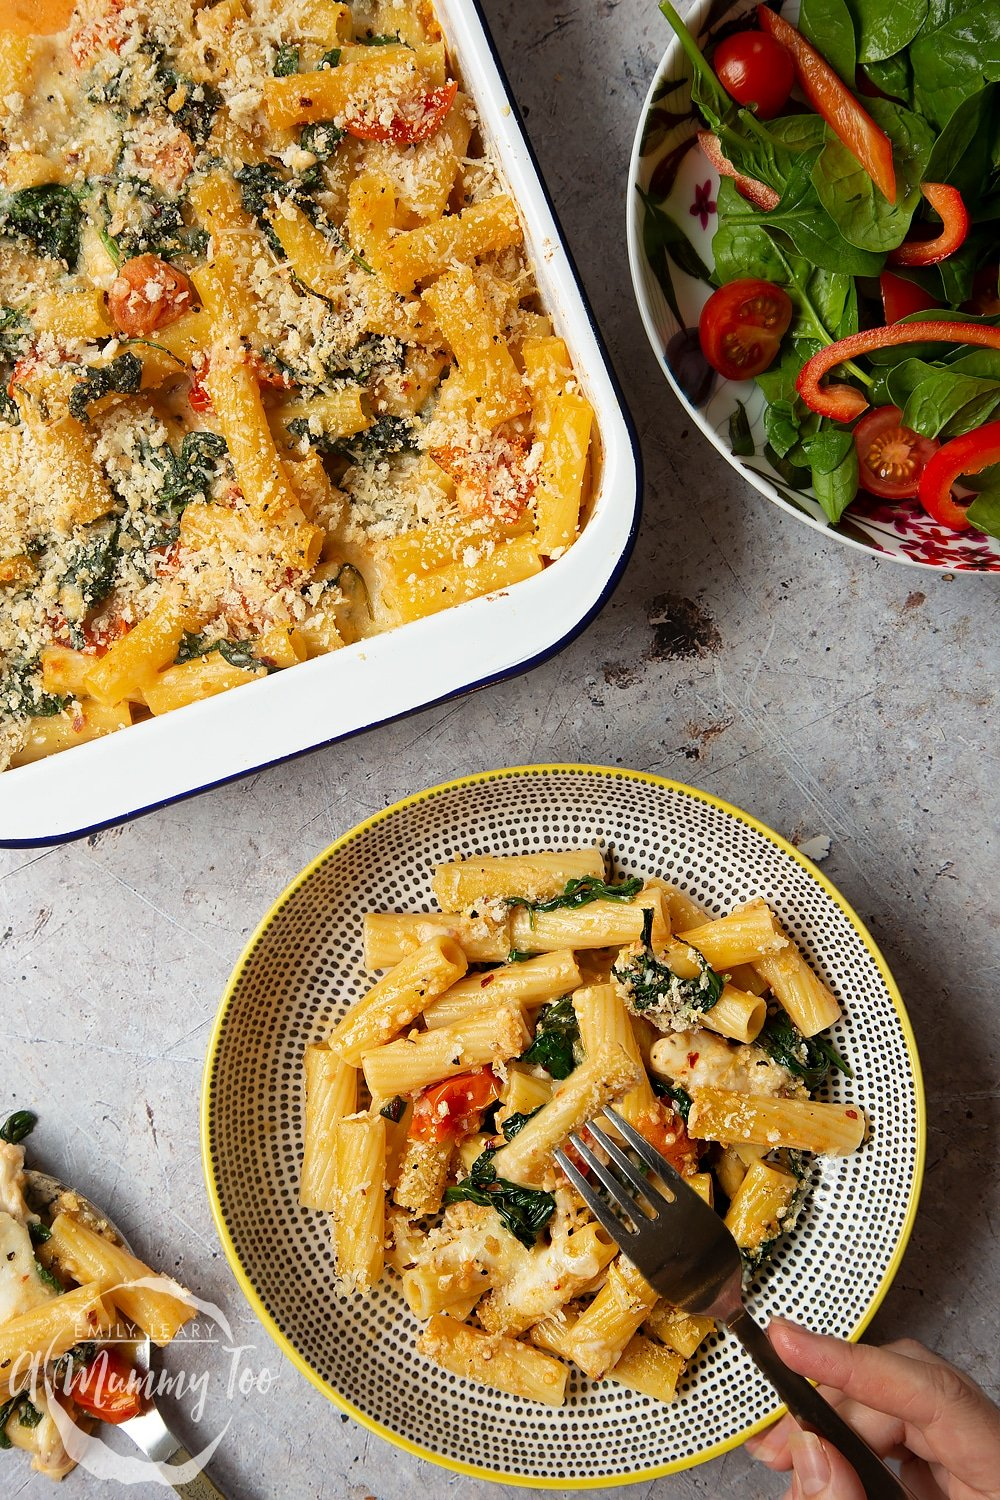 Overhead shot of a decorative bowl with a serving of Cherry tomato, spinach and garlic mozzarella pasta bake alongside the pan and a side salad.